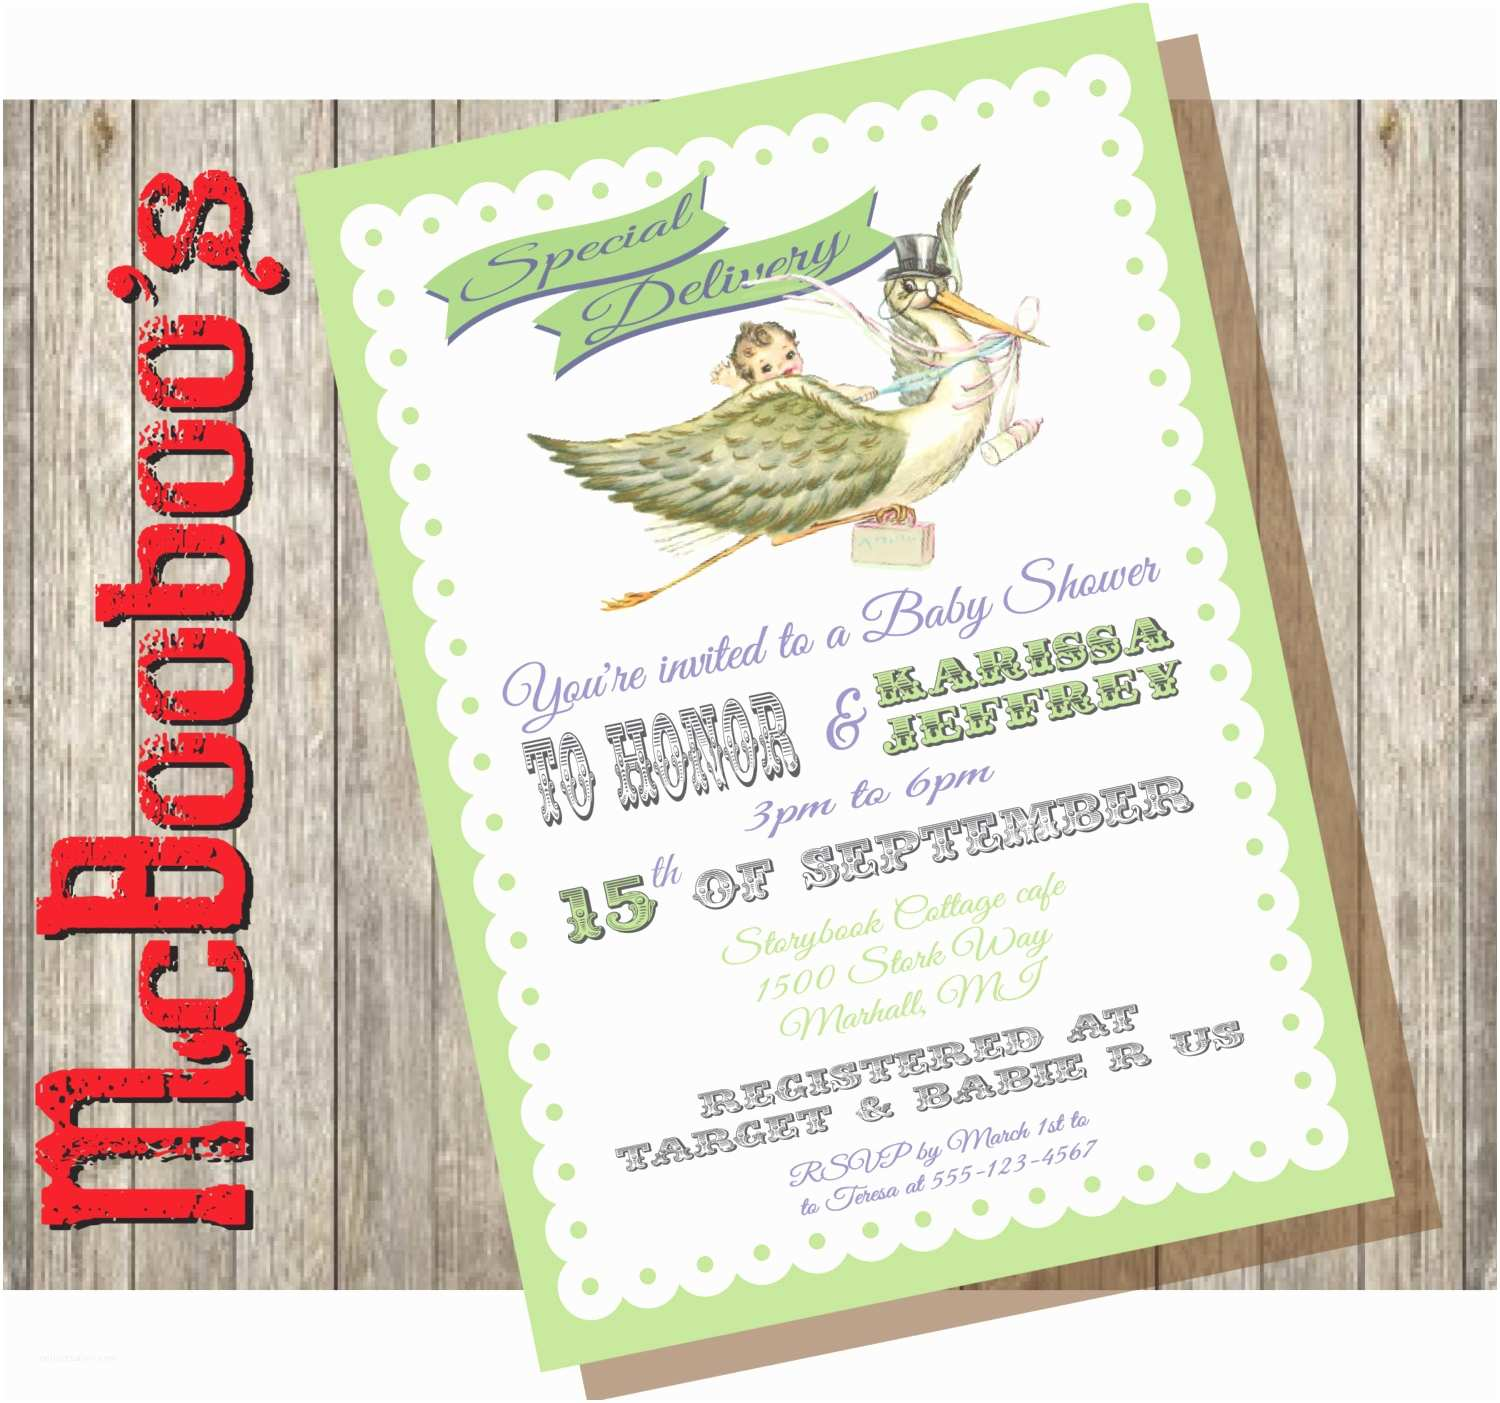 Storybook Baby Shower Invitations Vintage Storybook Stork Baby Shower Invitations